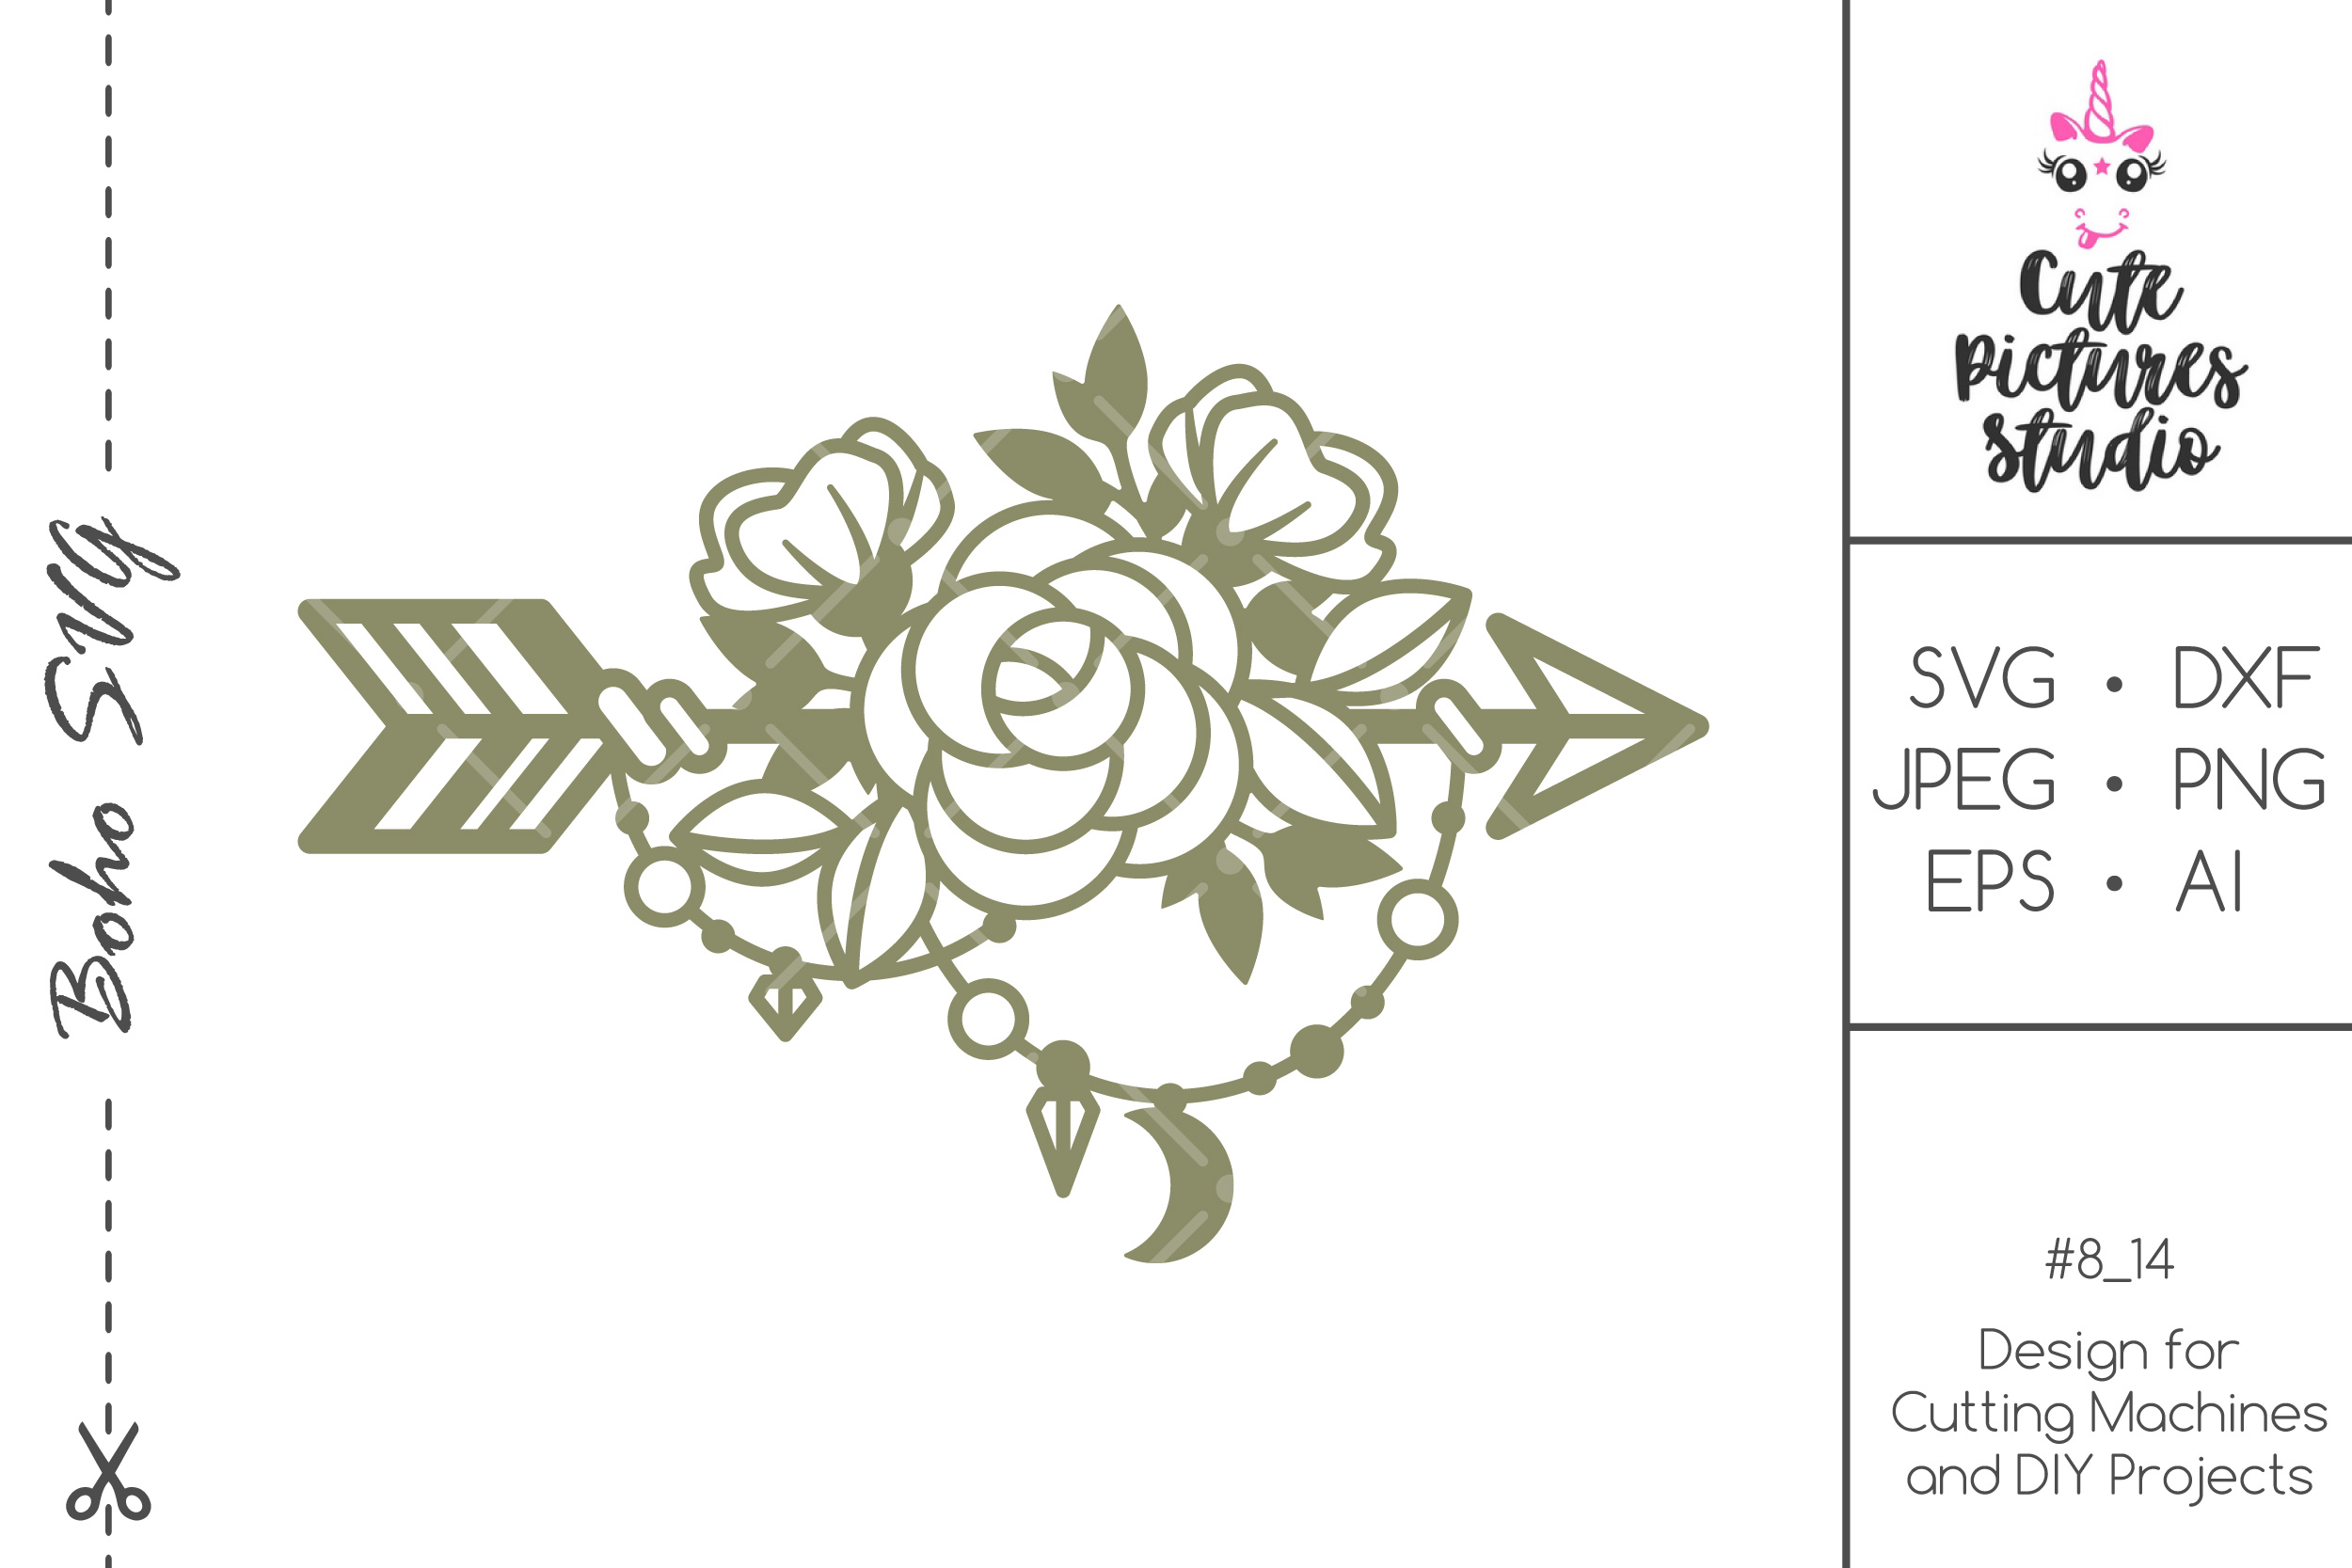 Download Free Boho Style Arrow With Flowers Graphic By Cutepicturesstudio for Cricut Explore, Silhouette and other cutting machines.